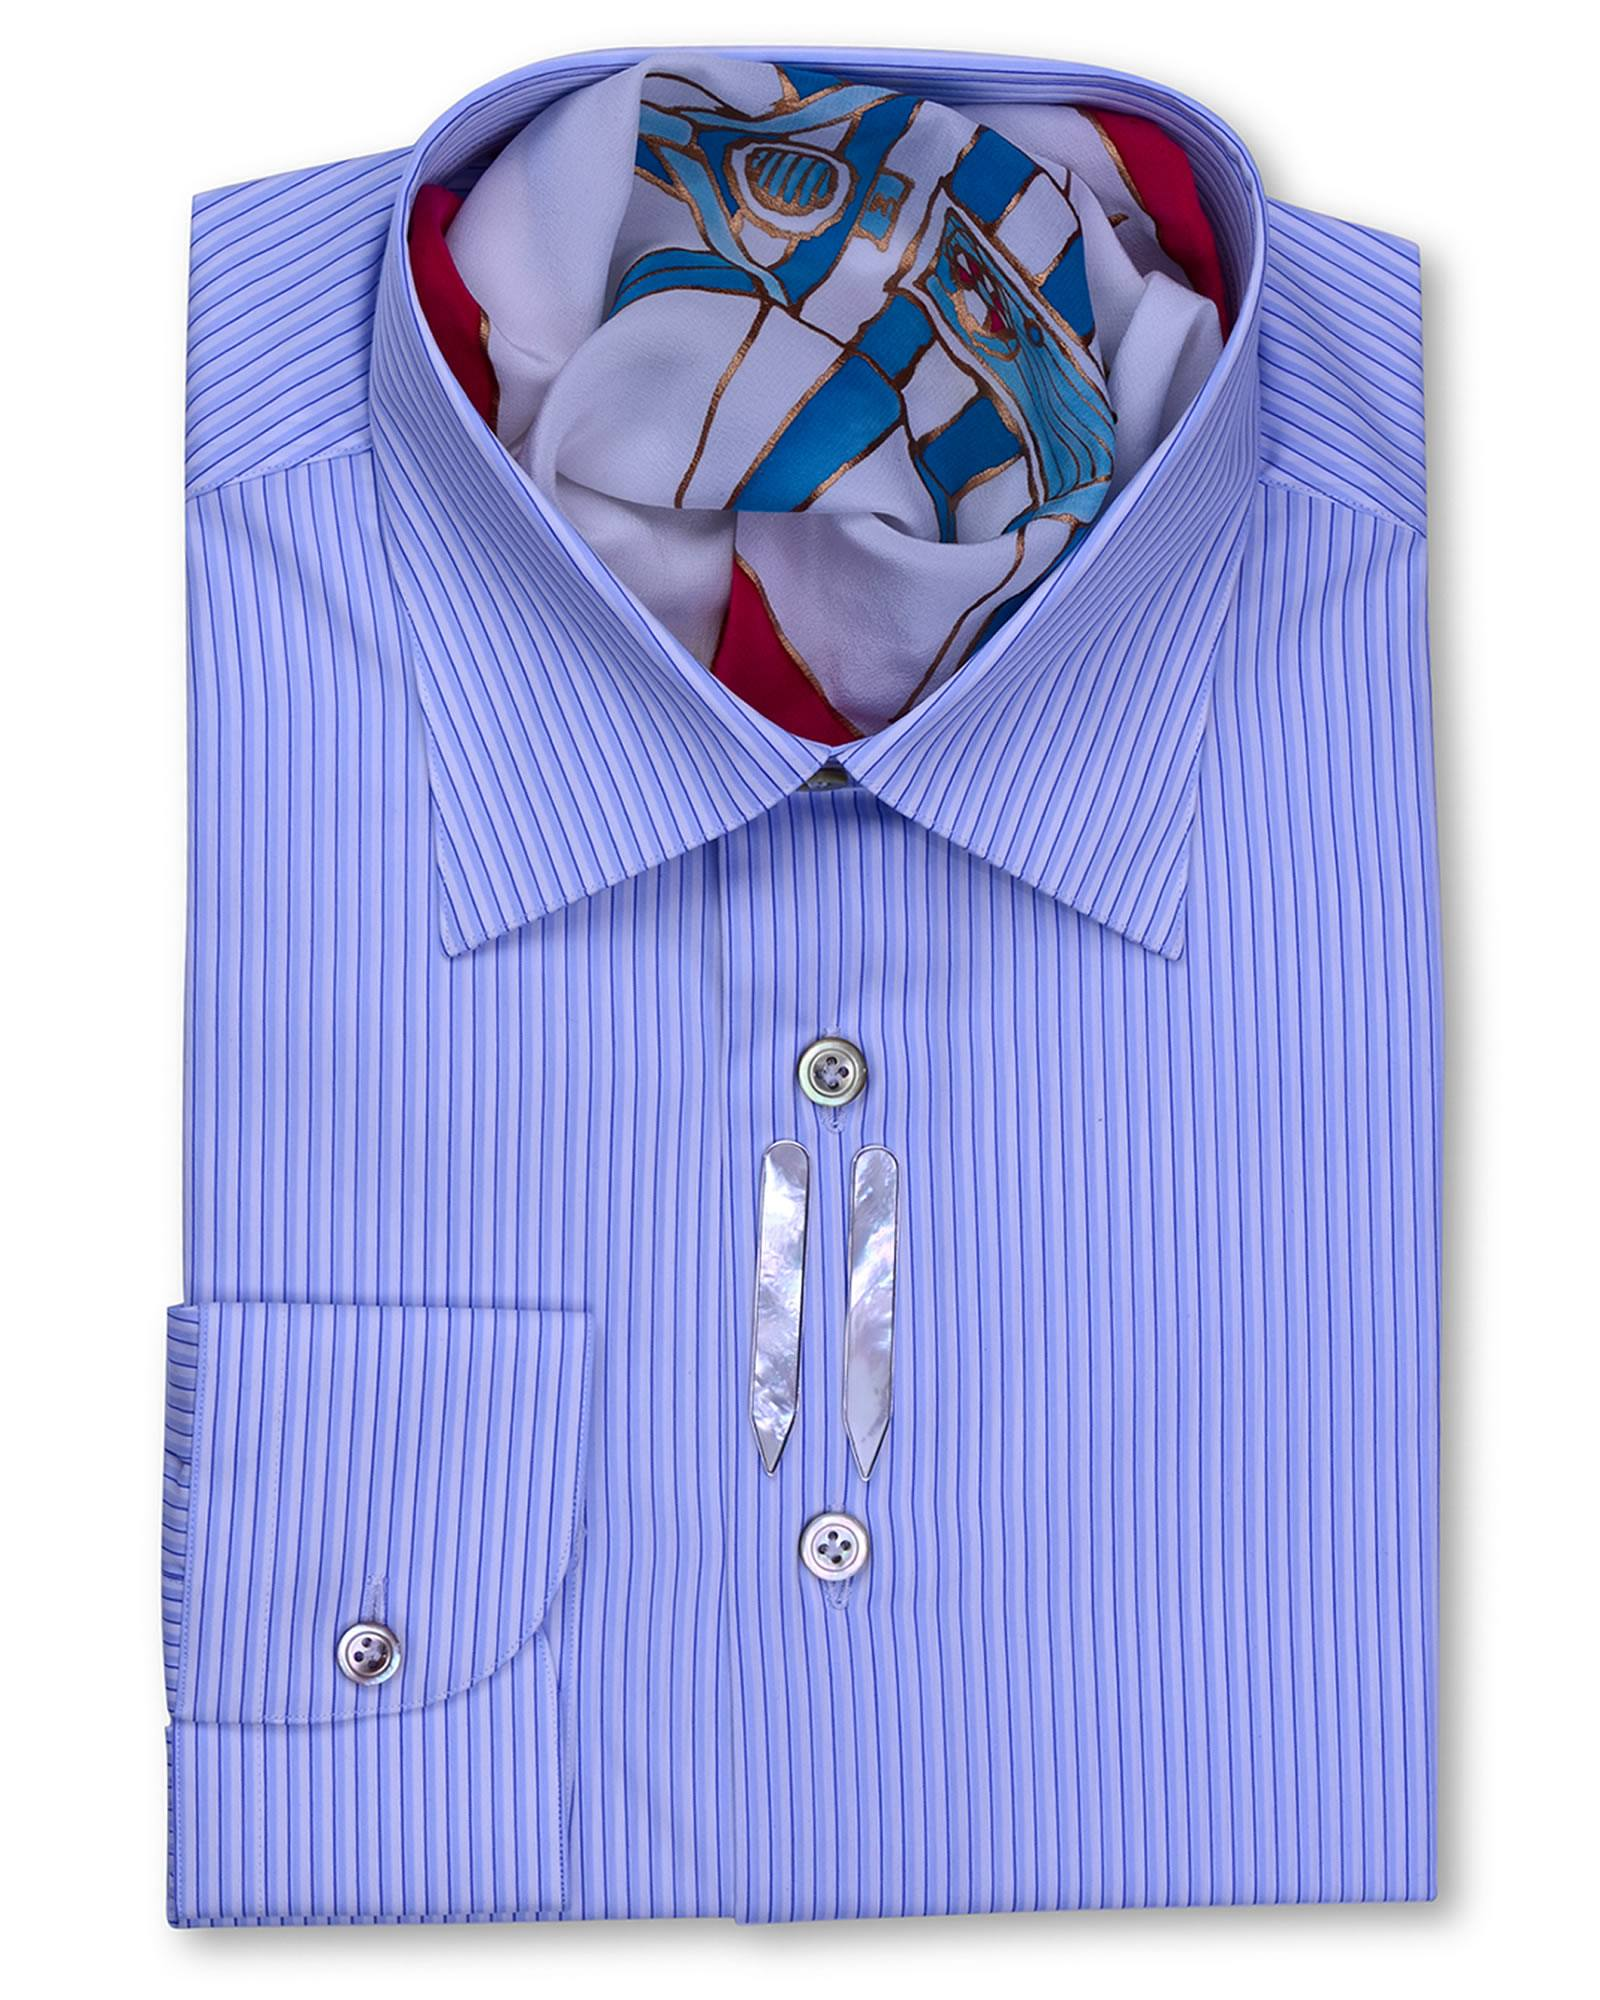 Classic Style Regular Fit Blue White Striped Dress Shirts